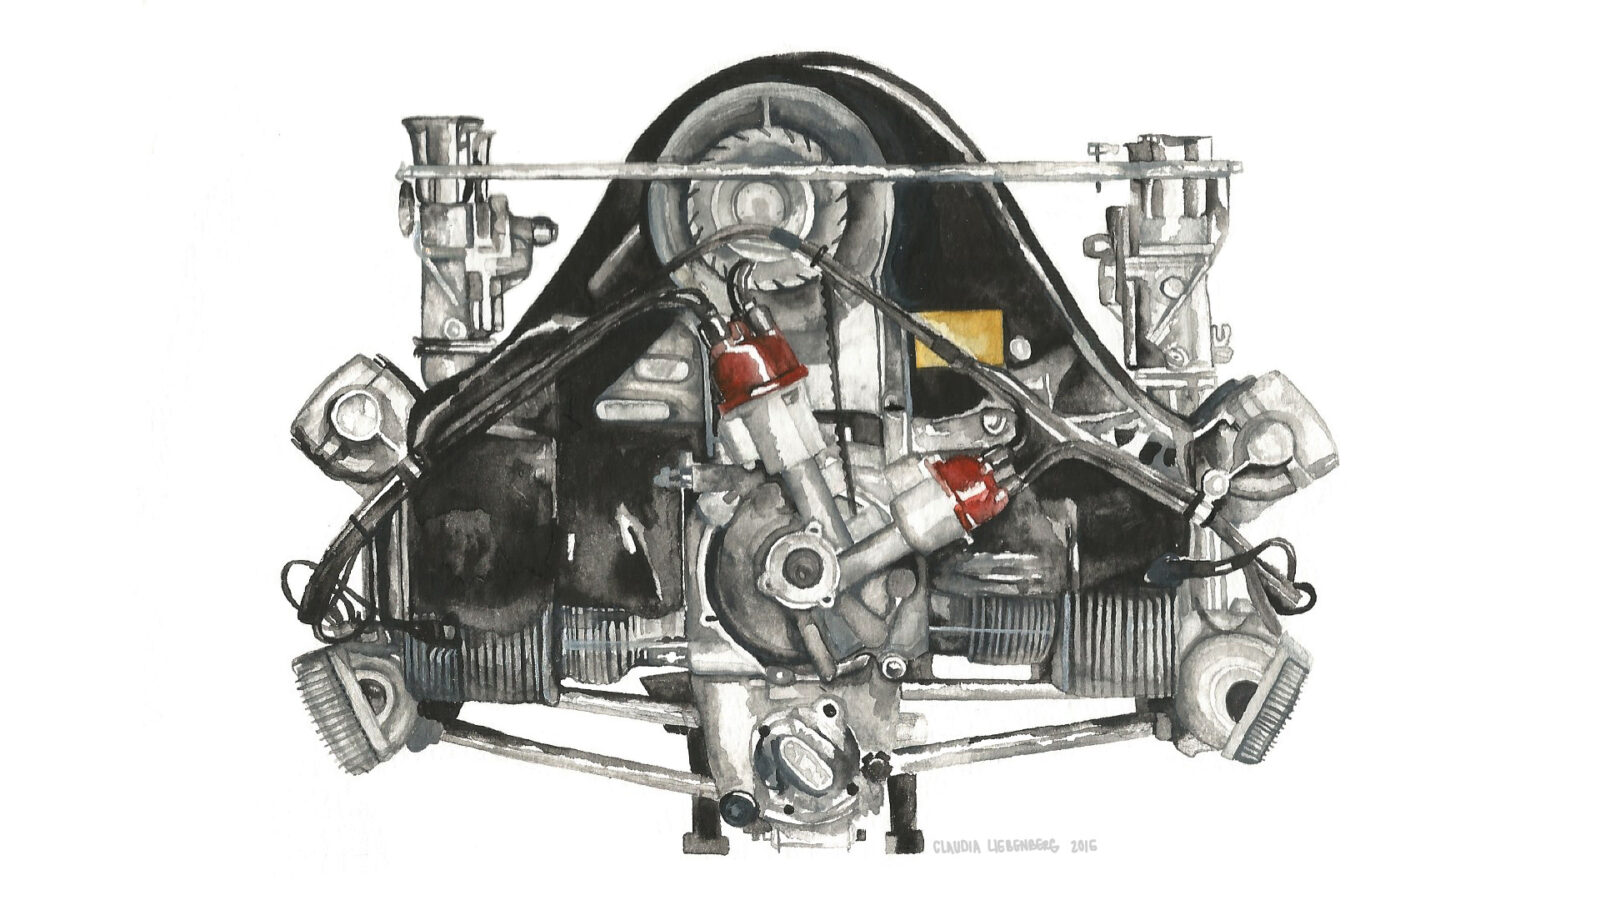 Porsche Engine Art 1600x900 - Porsche 356 by Claudia Liebenberg